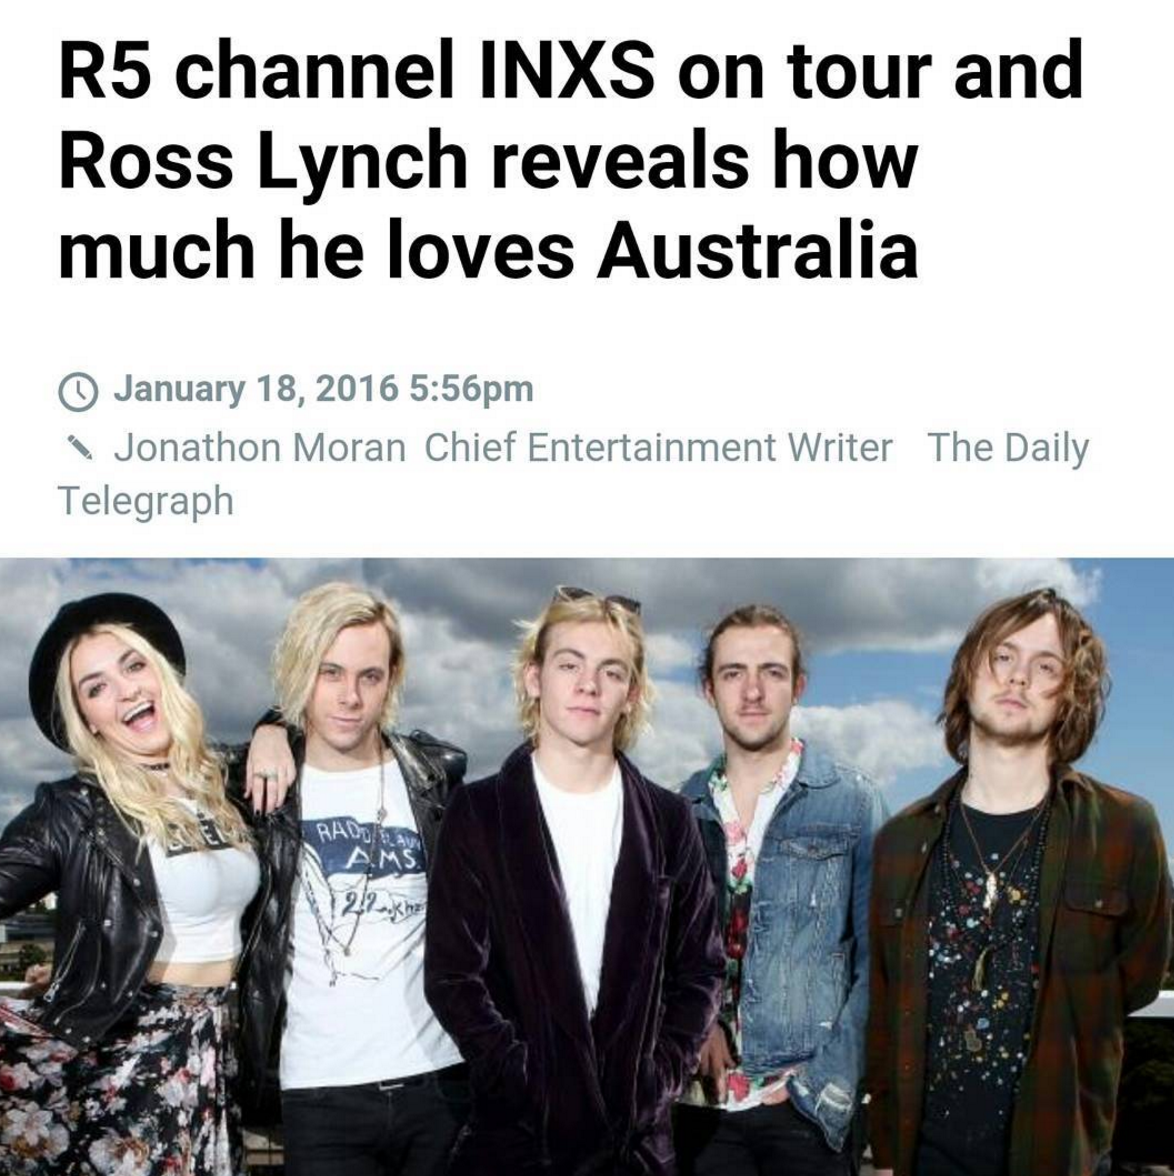 We love young talent. Whats your favorite song @officialR5 ? @rossR5, @rikerR5, @rockyR5, @rydelR5 @ratliffR5 #R5 https://t.co/h9ZzFMGNjs